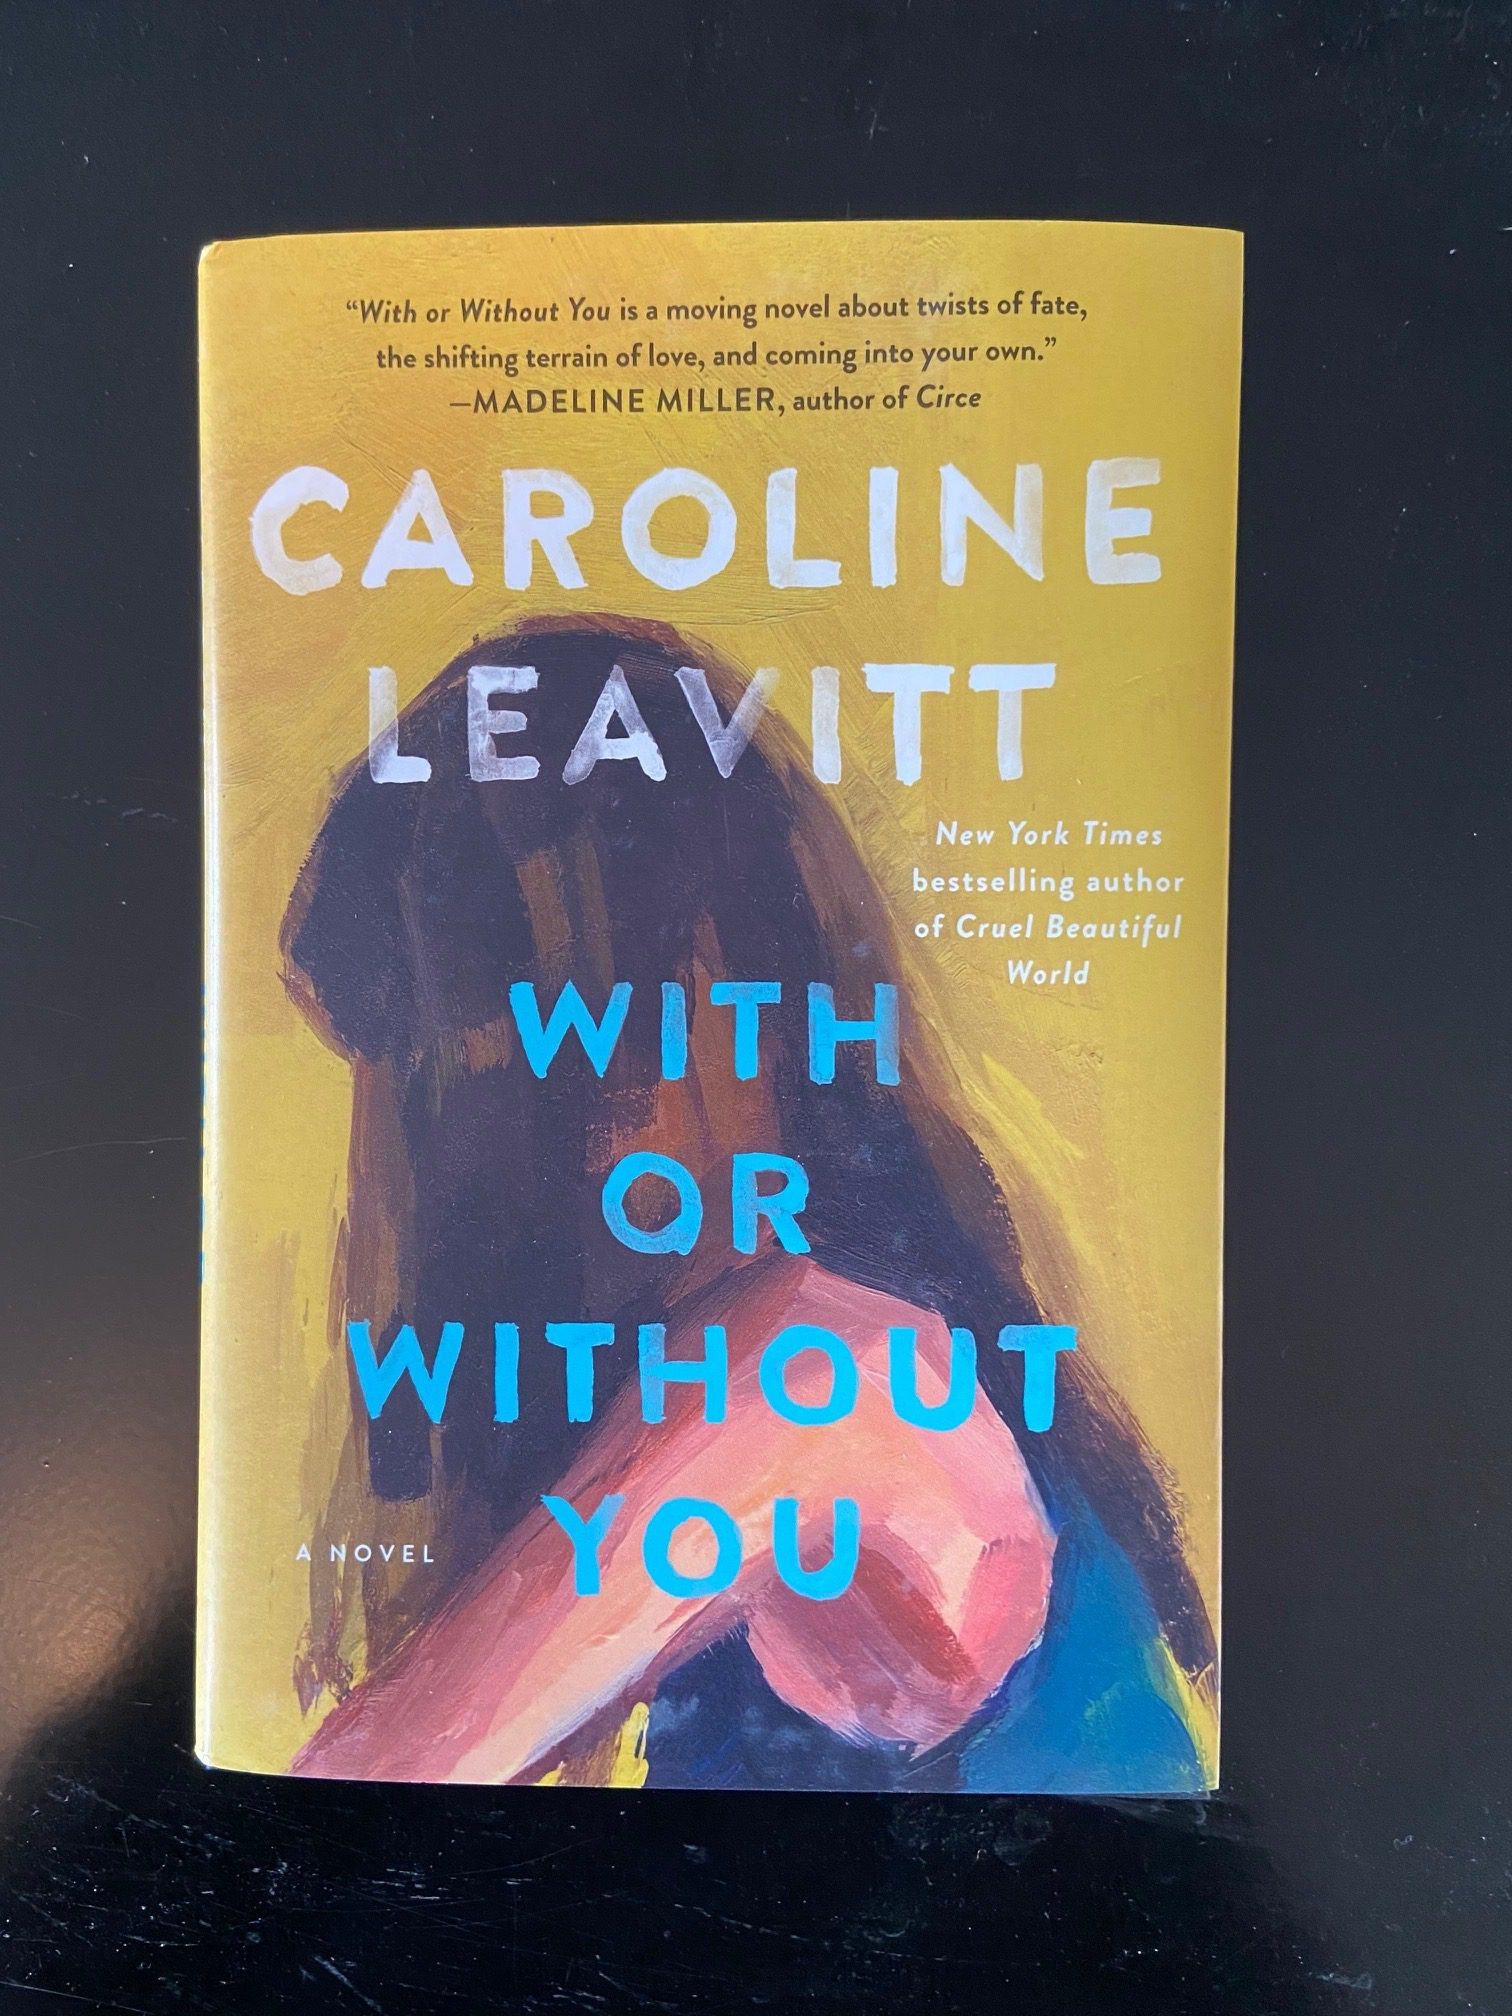 Caroline Leavitt: Five Things I Learned Writing With Or Without You